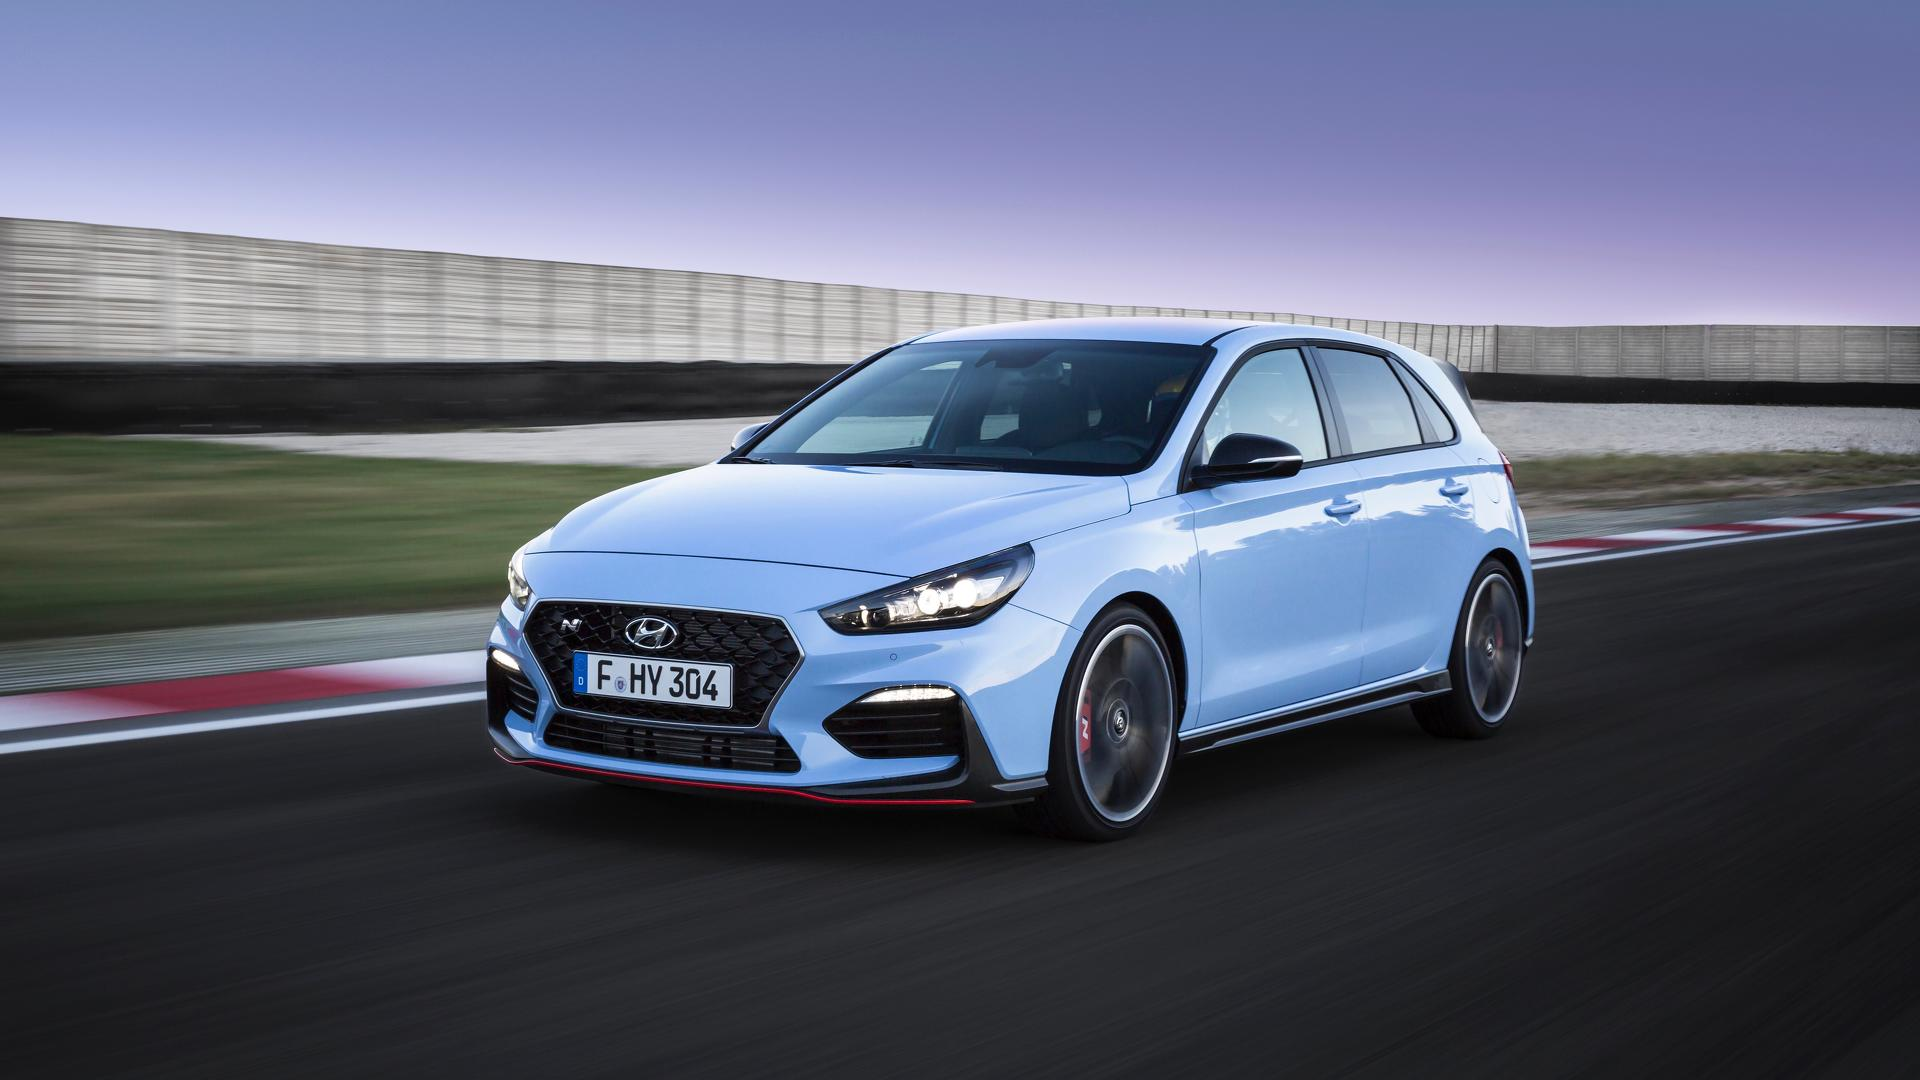 Hyundai I30 Interieur Hyundai I30 N Officially Revealed To Spice Up Hot Hatch Game